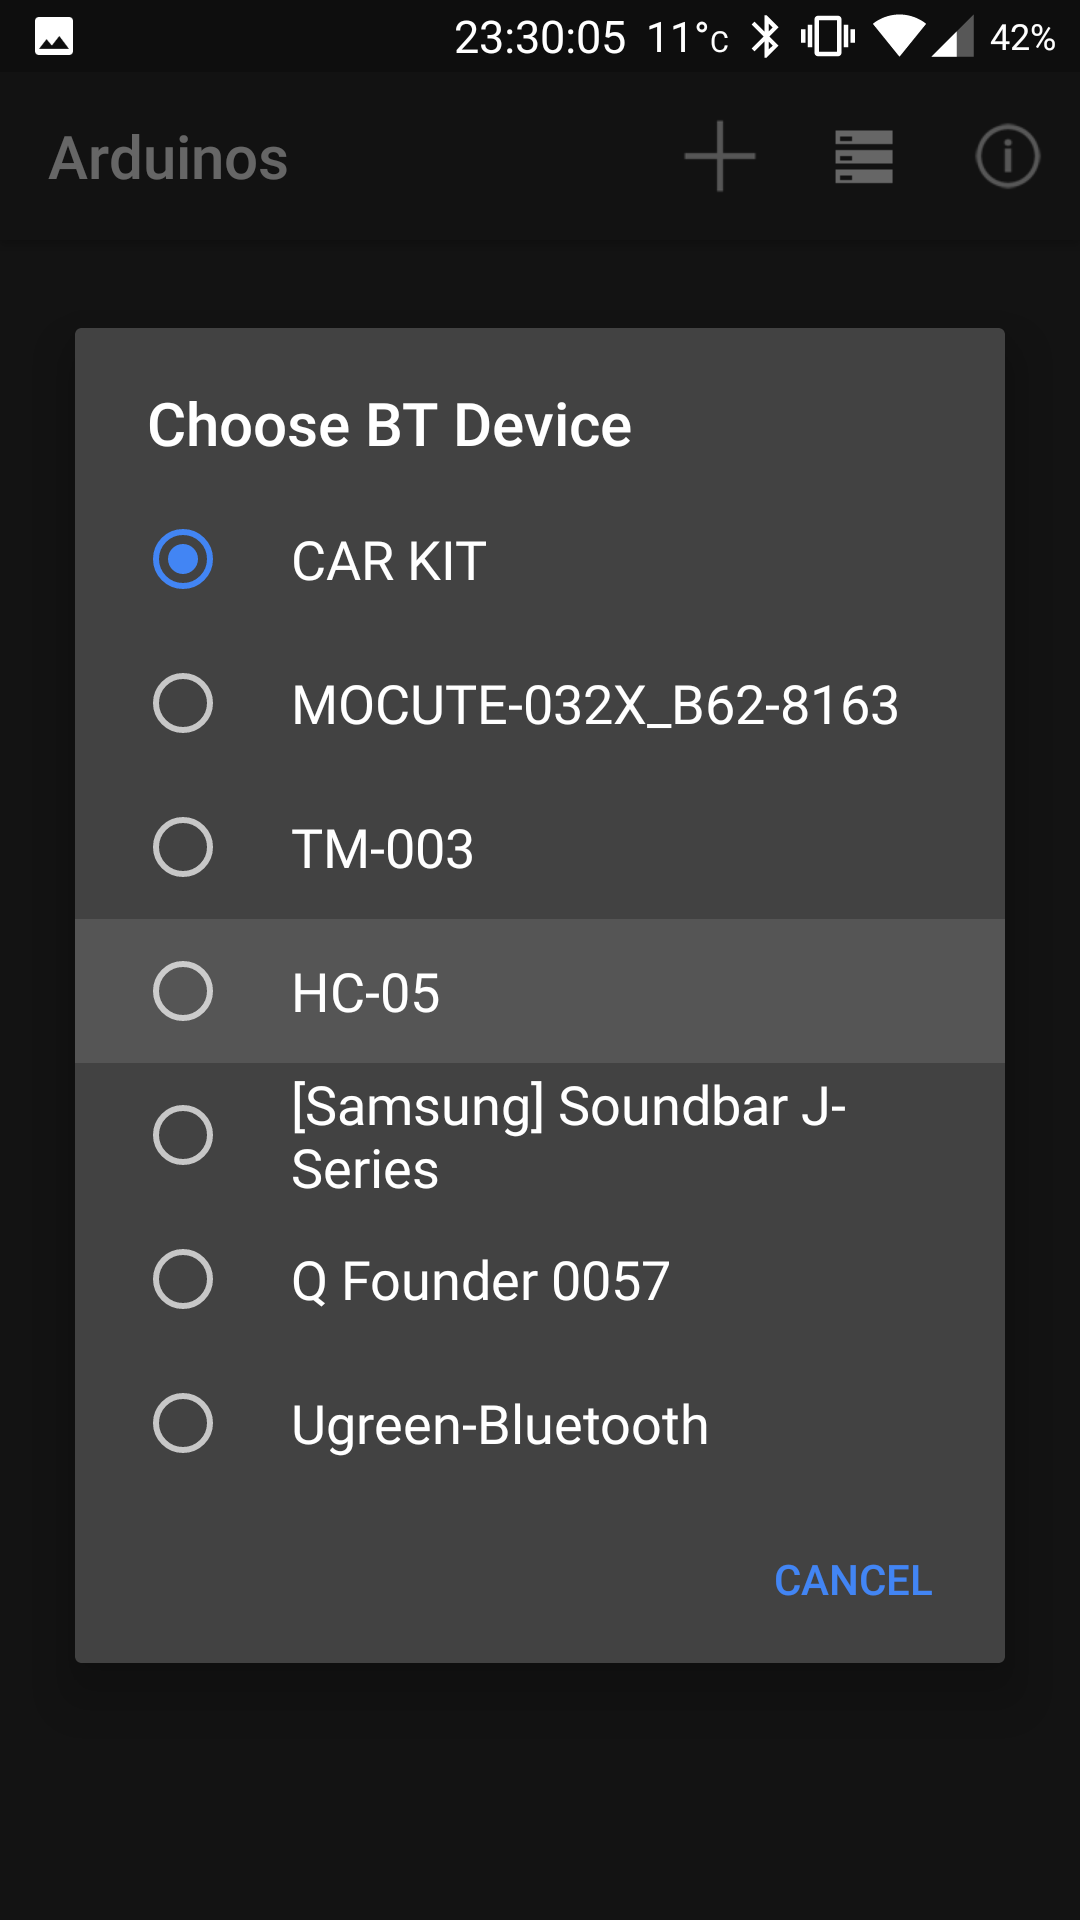 Picture of Auto App for Arduino Settings and BT Connection